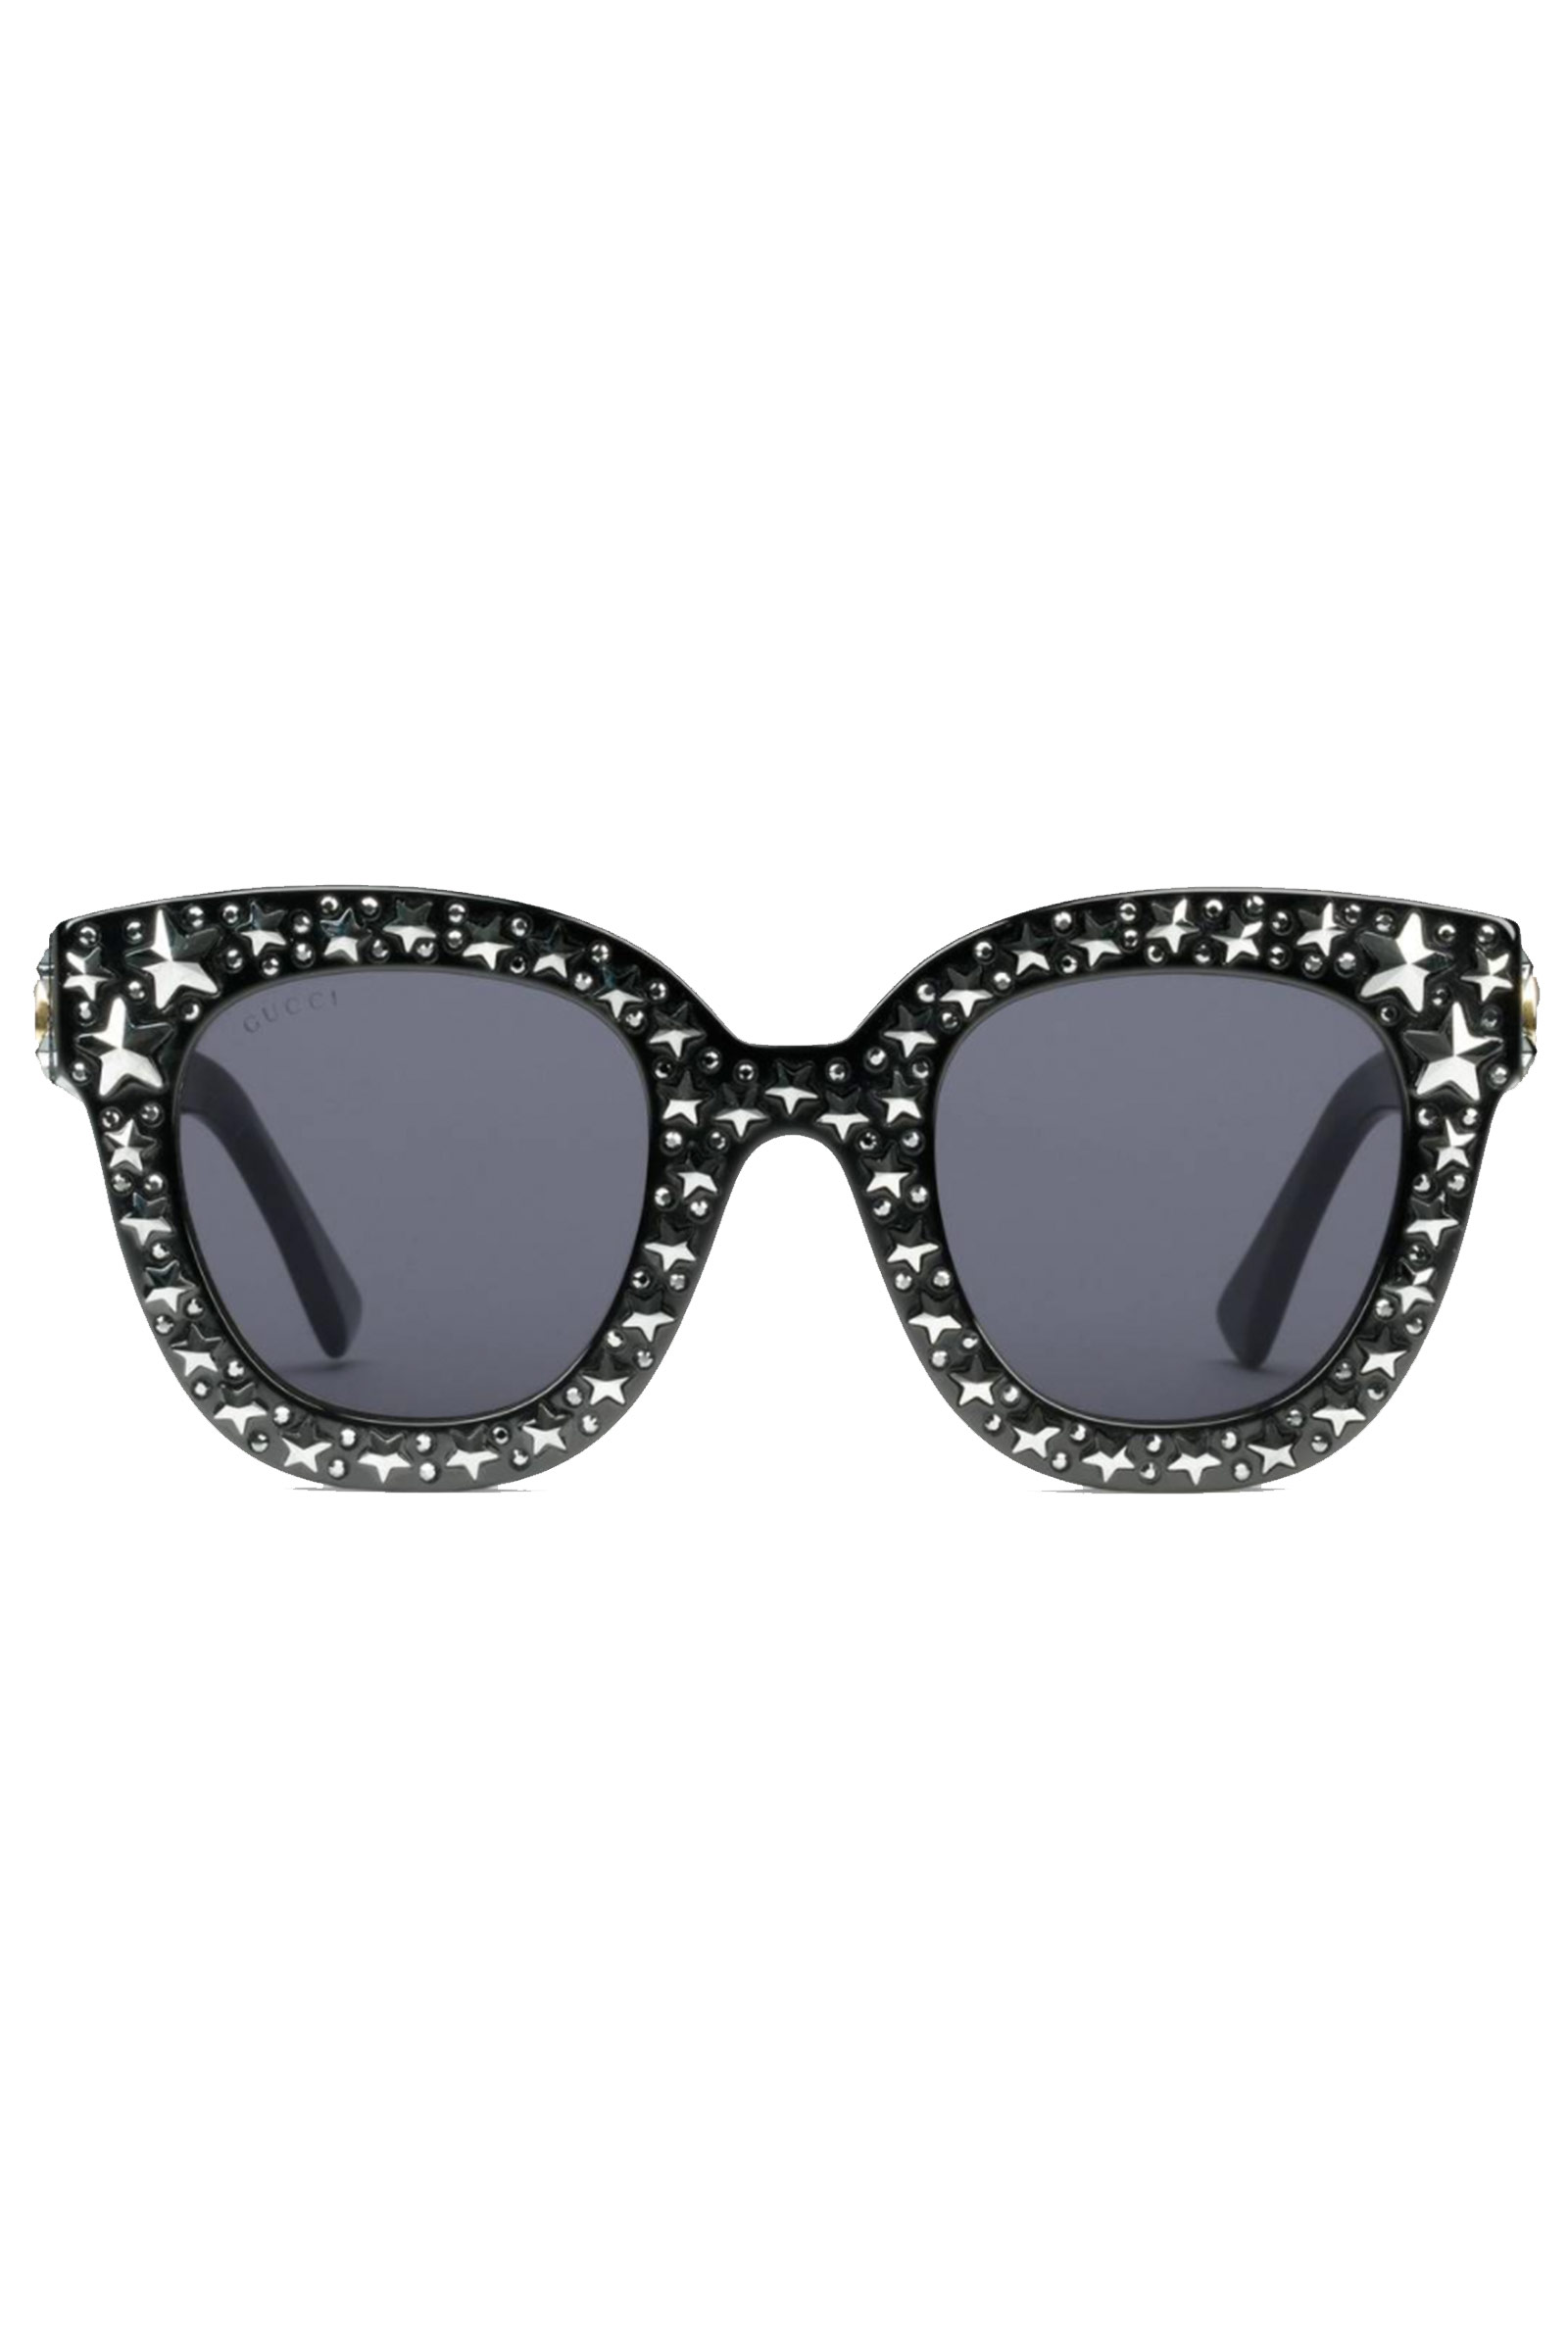 Click to Buy Gucci Star Sunglasses